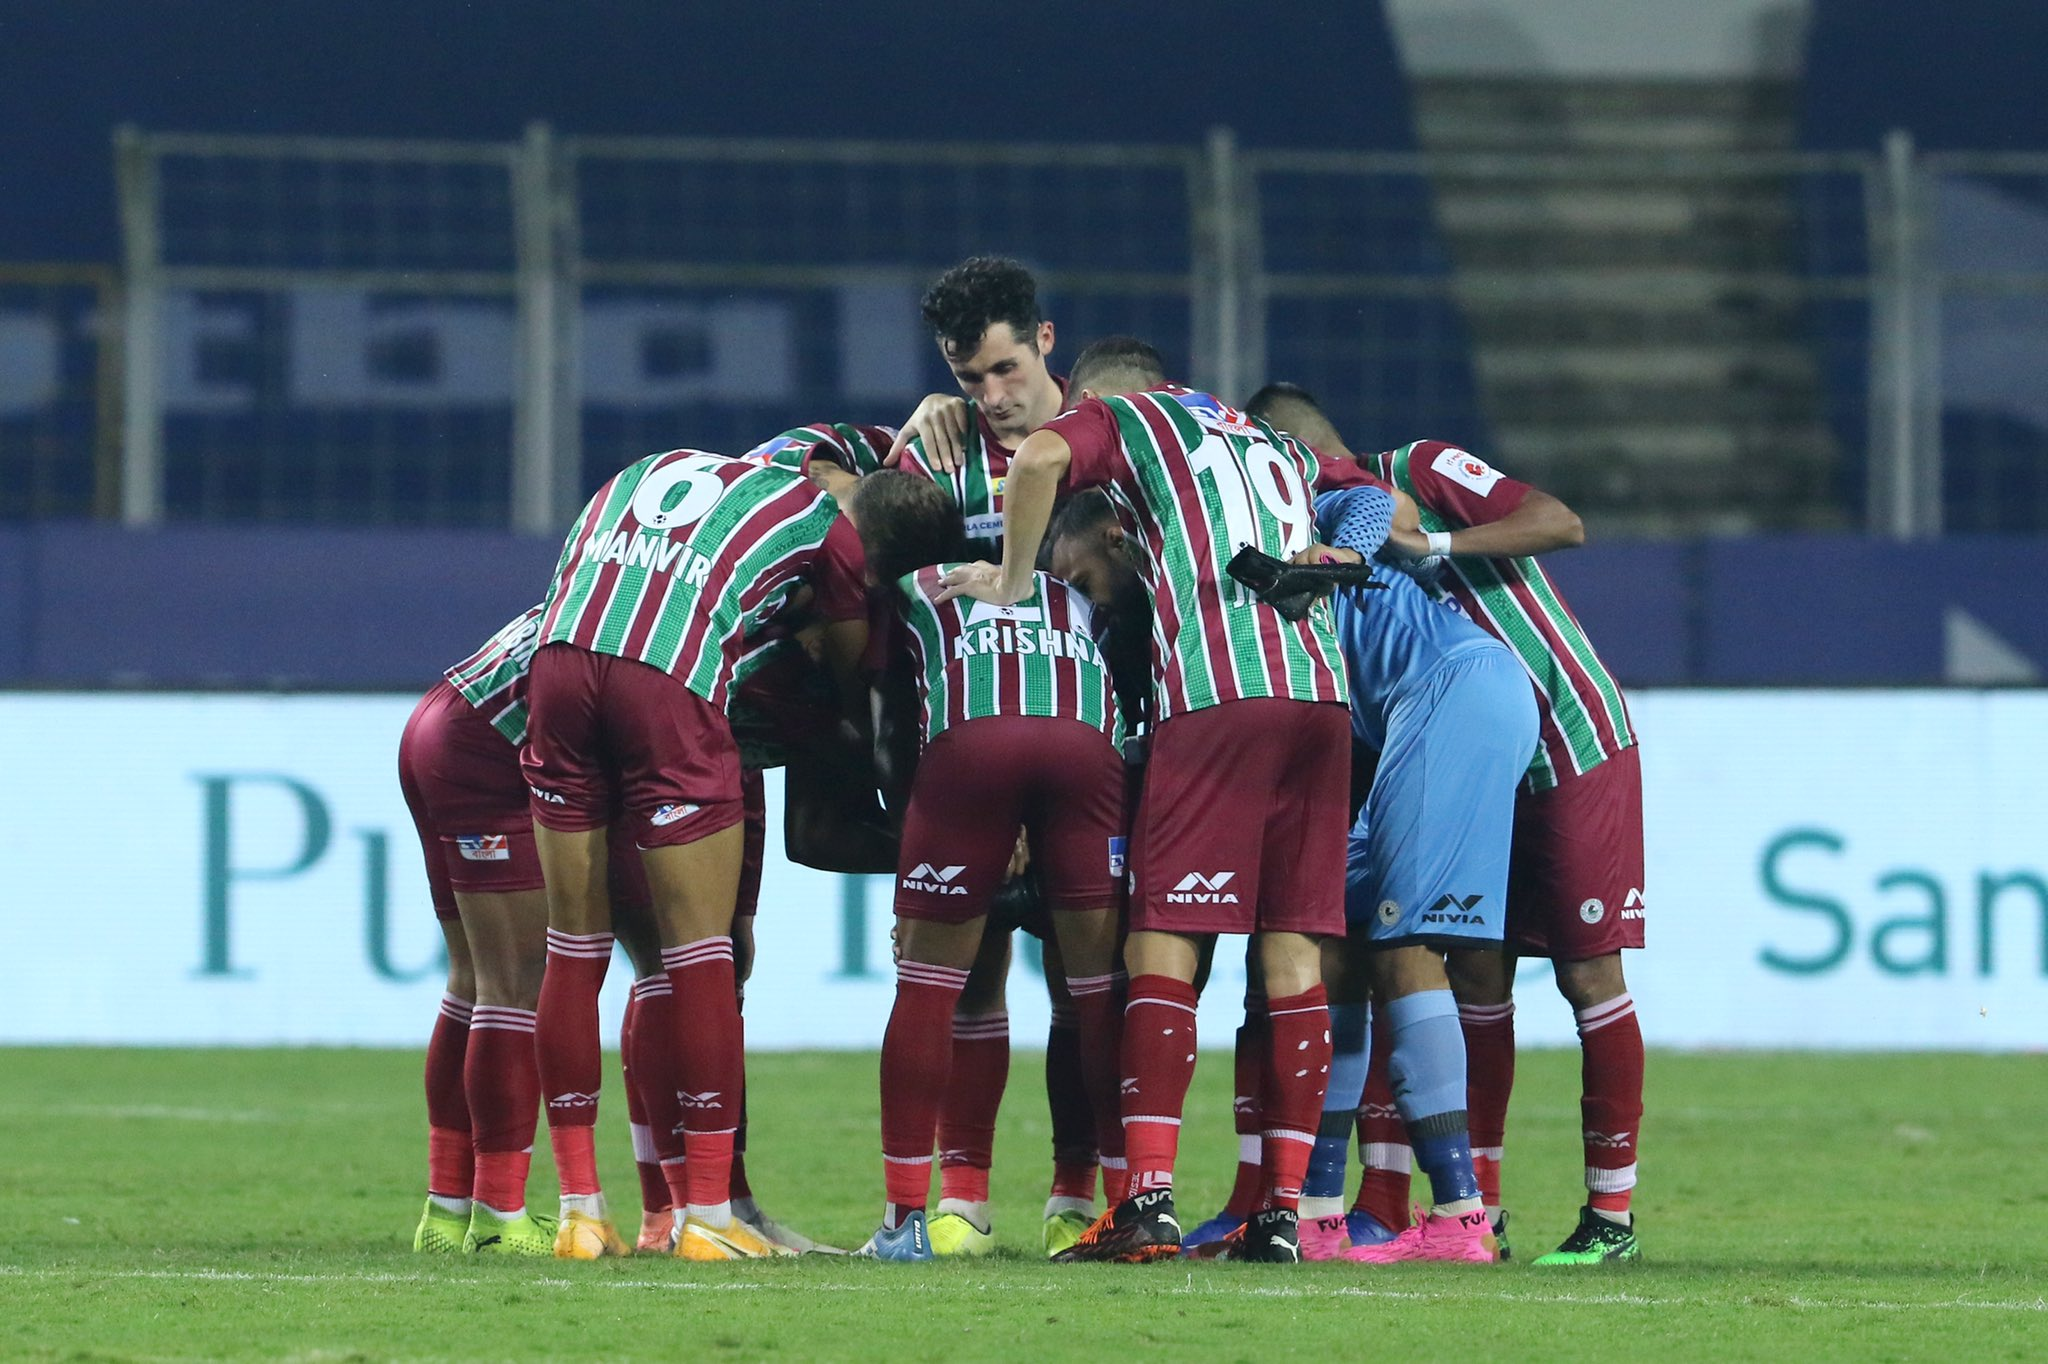 ATK Mohun Bagan will be looking for a victory against Odisha FC